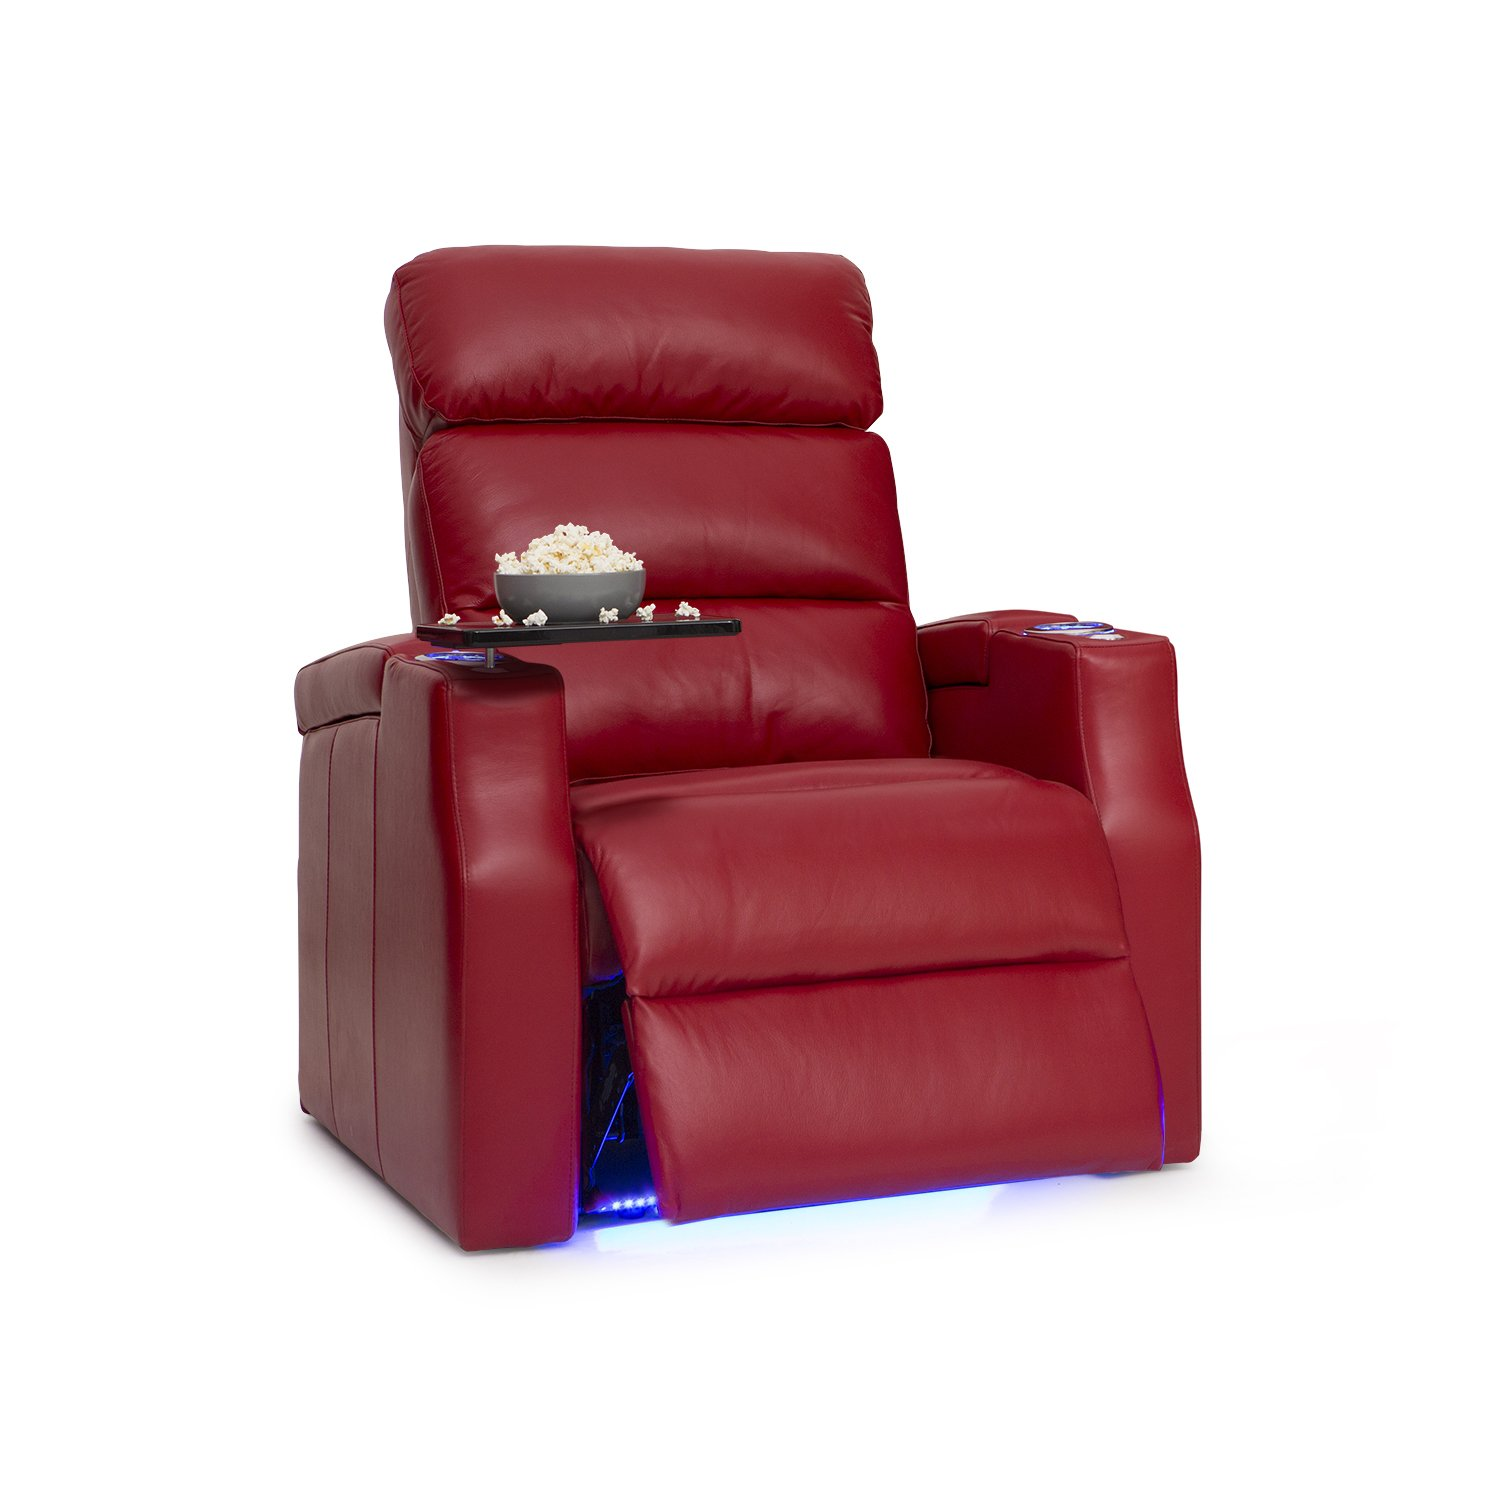 Barcalounger Matrix Leather Power Home Theater Recliner with Adjustable Powered Headrests, In-Arm Storage, and USB Charging, Red